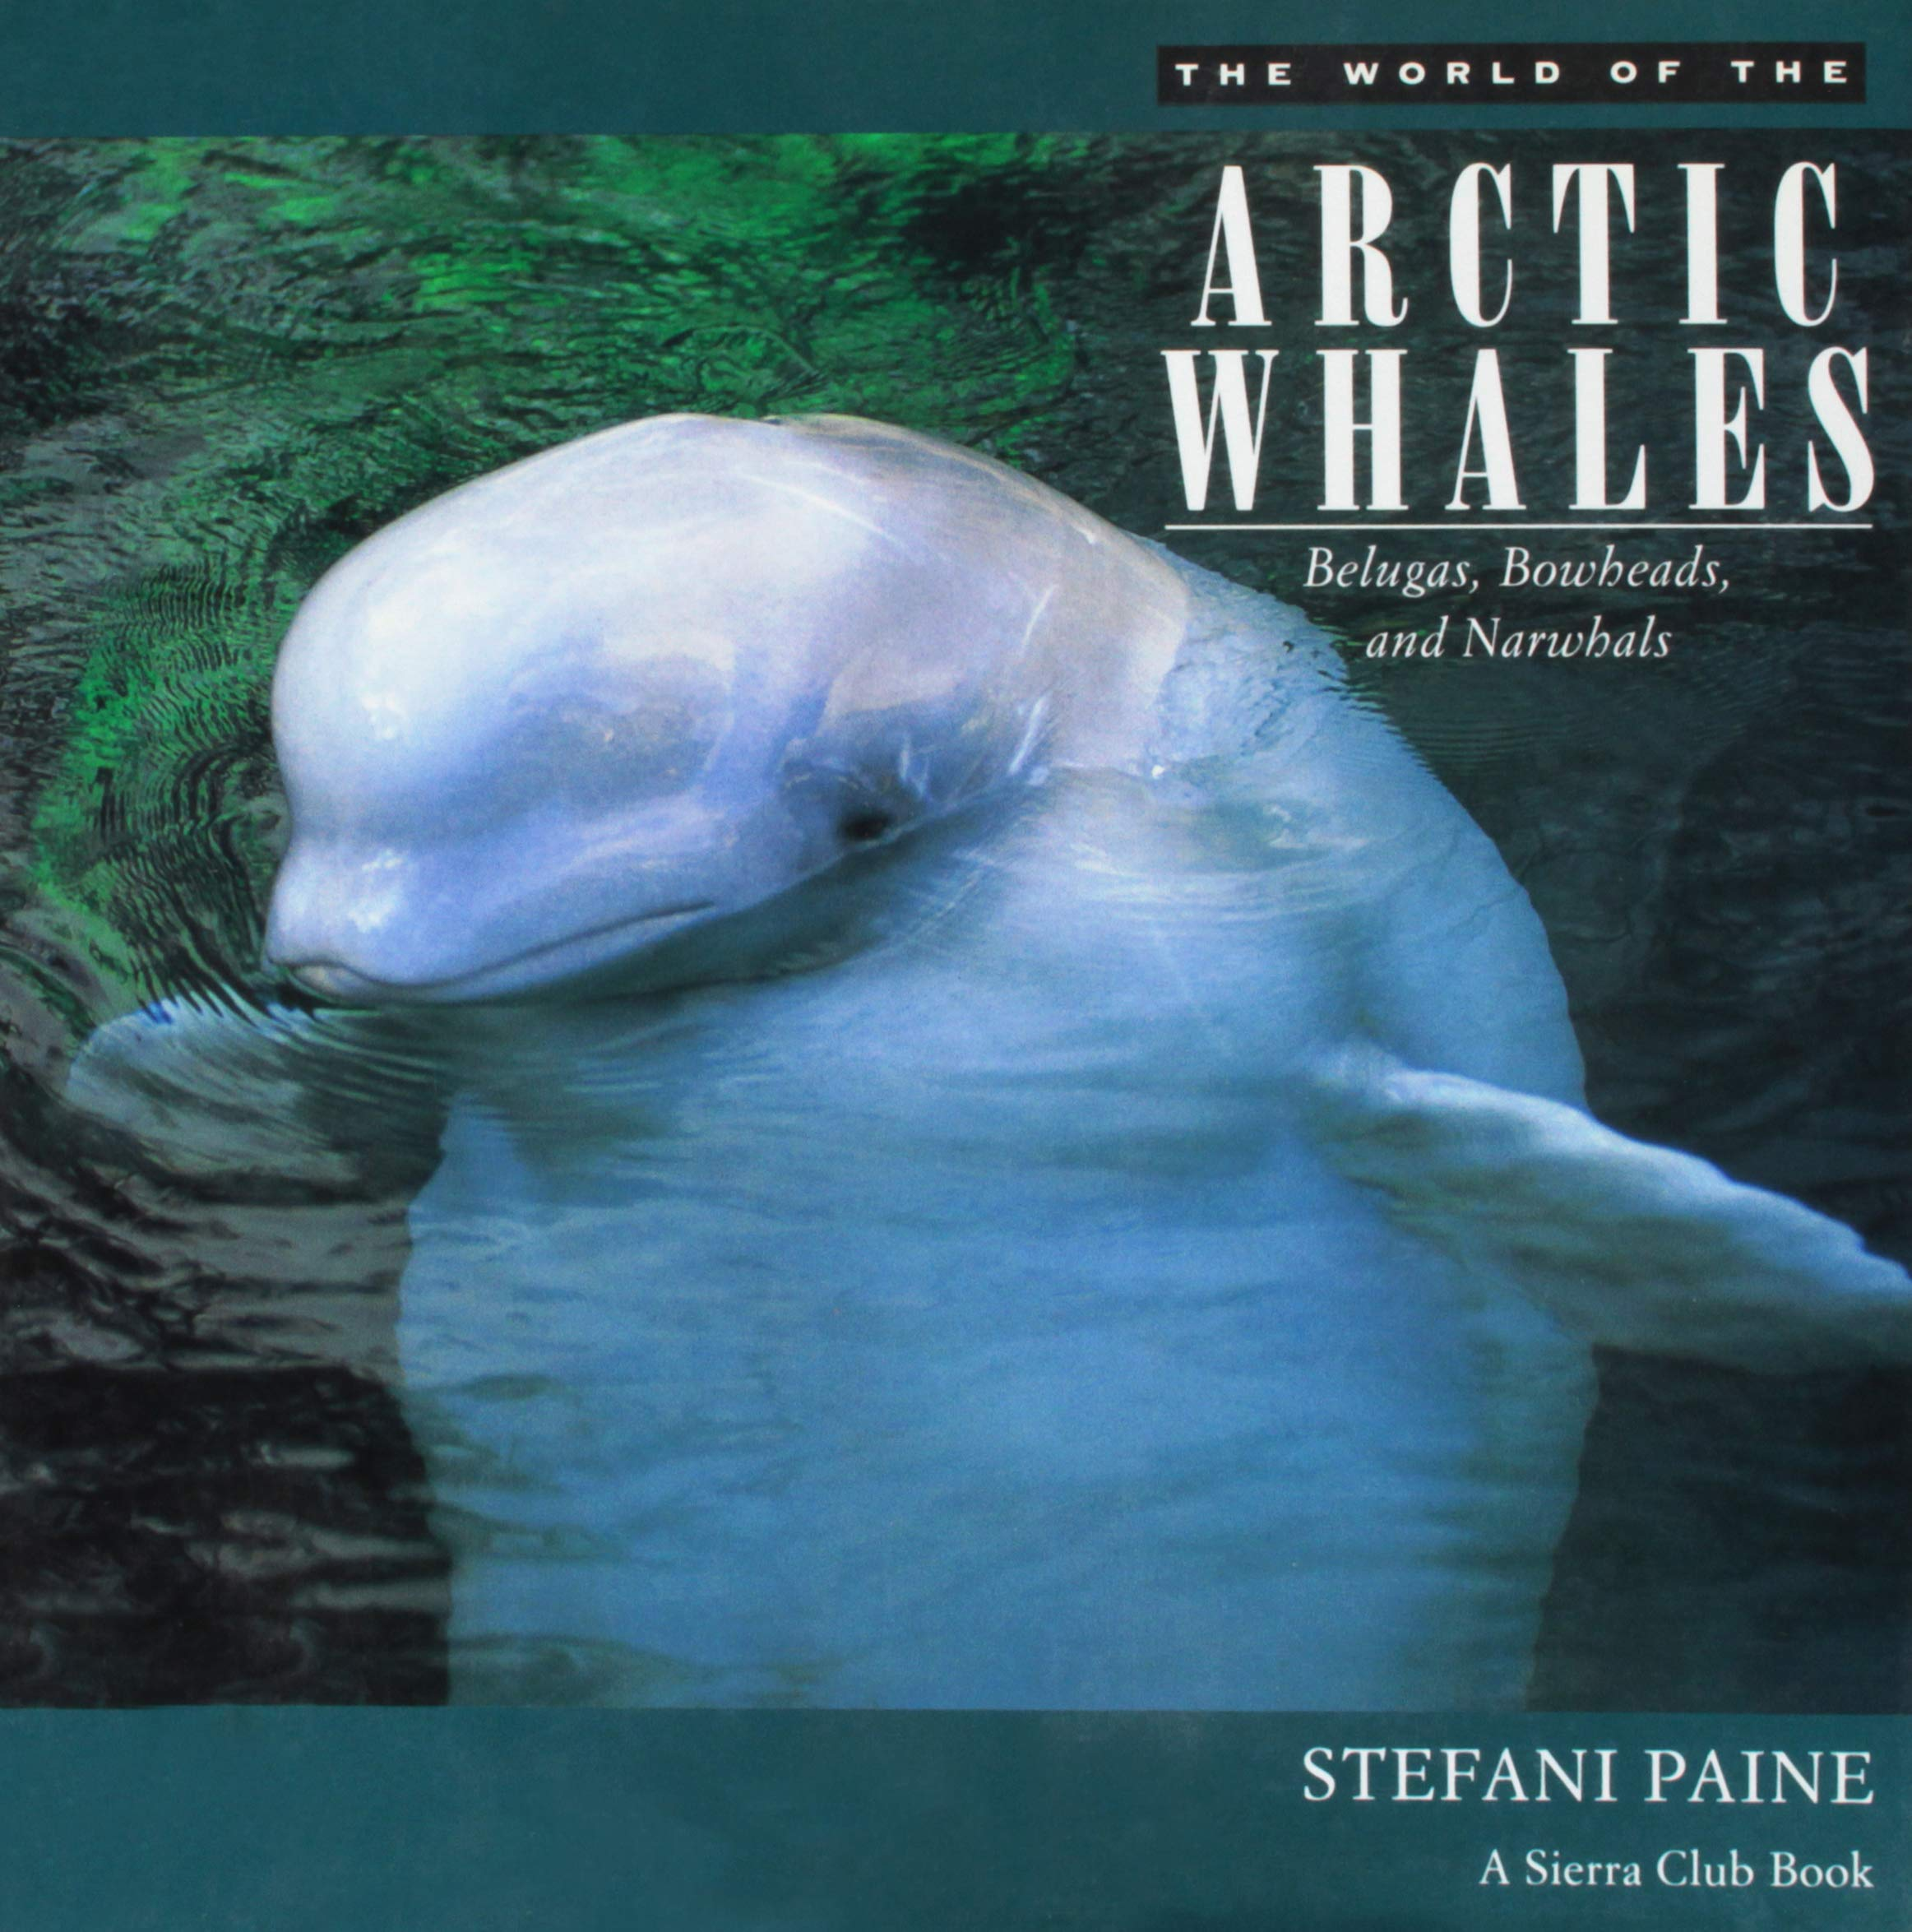 The World of the Arctic Whales: Belugas, Bowheads, and Narwhals Hardcover – October 1, 1995 Stefani Paine Sierra Club Books 0871563789 General